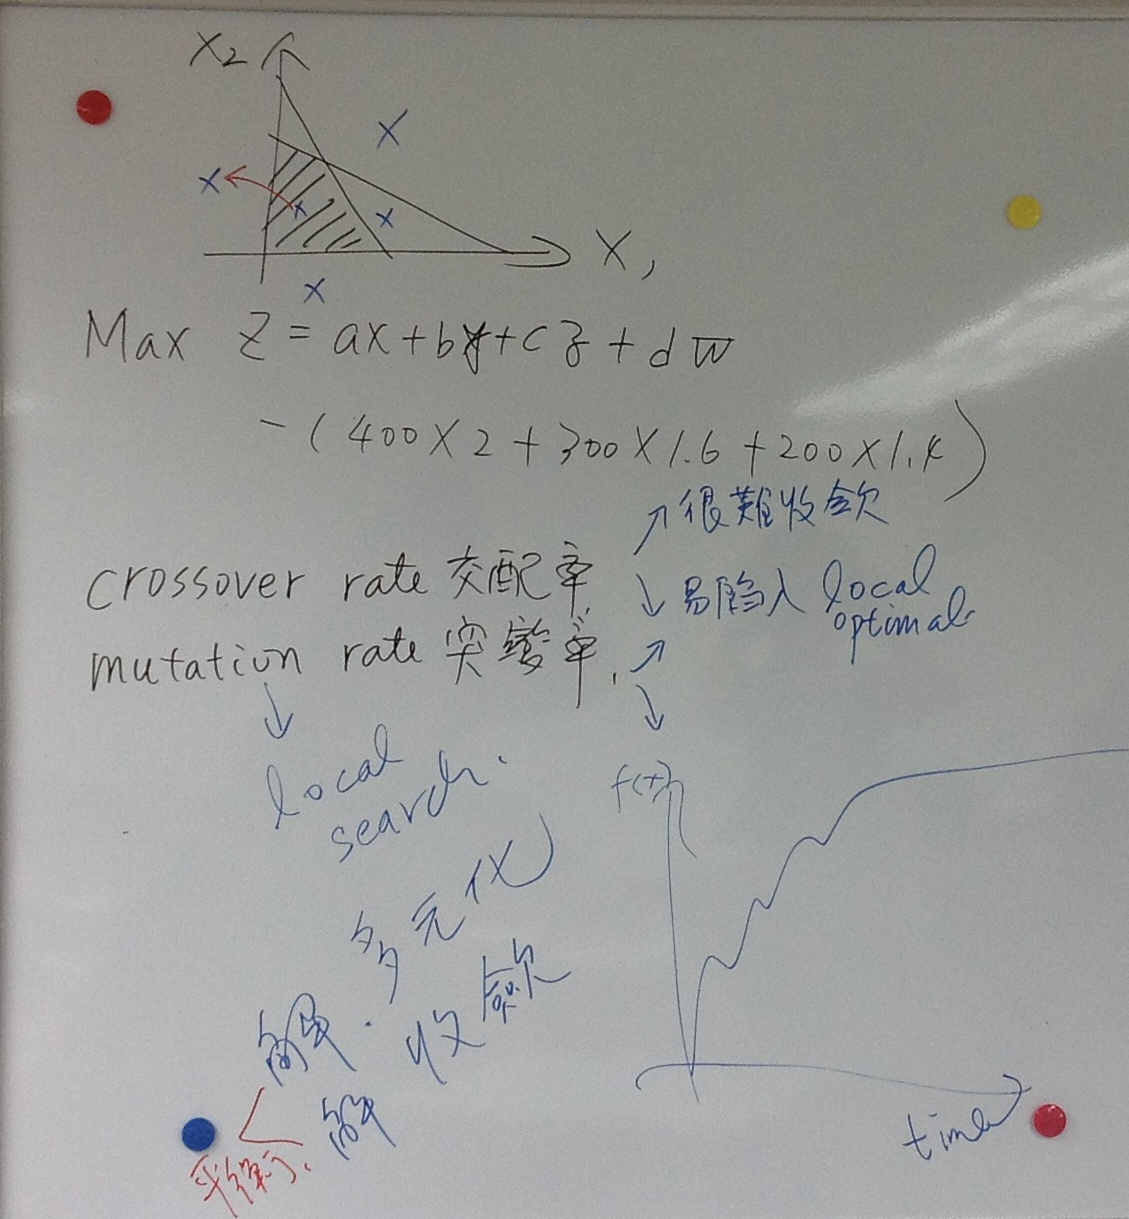 20141101_crossover_mutation_rate